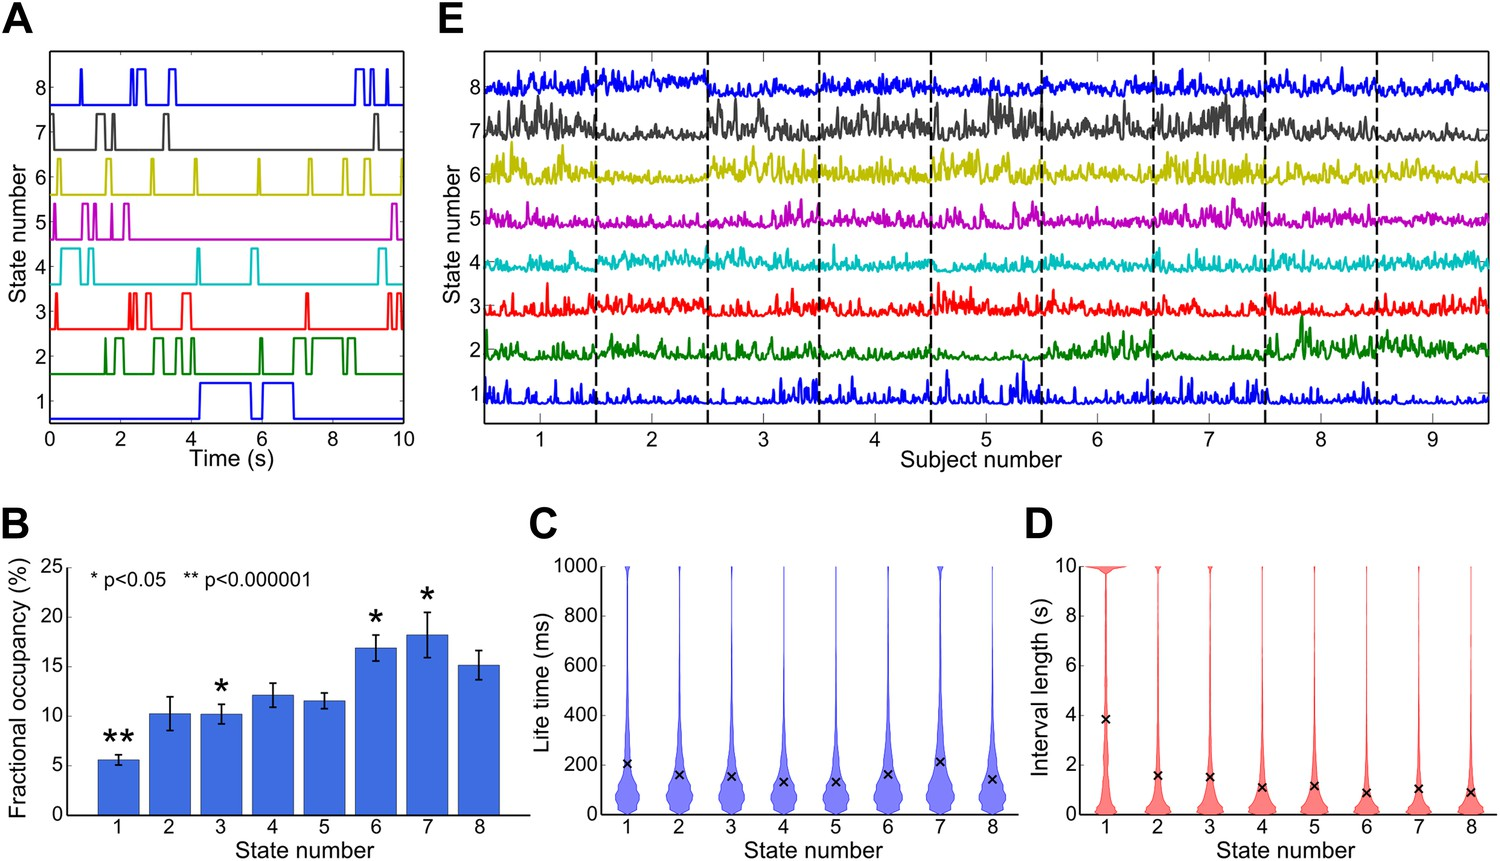 Fast transient networks in spontaneous human brain activity | eLife